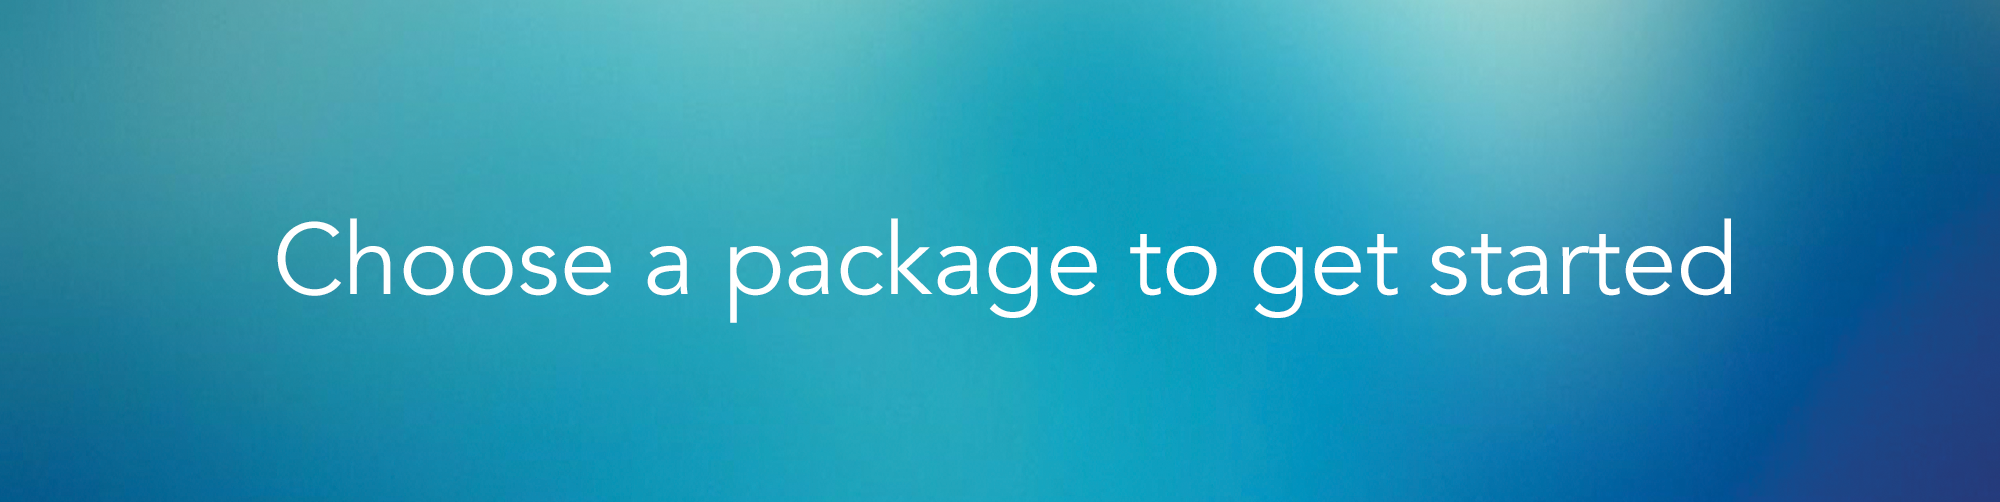 Header-Packages